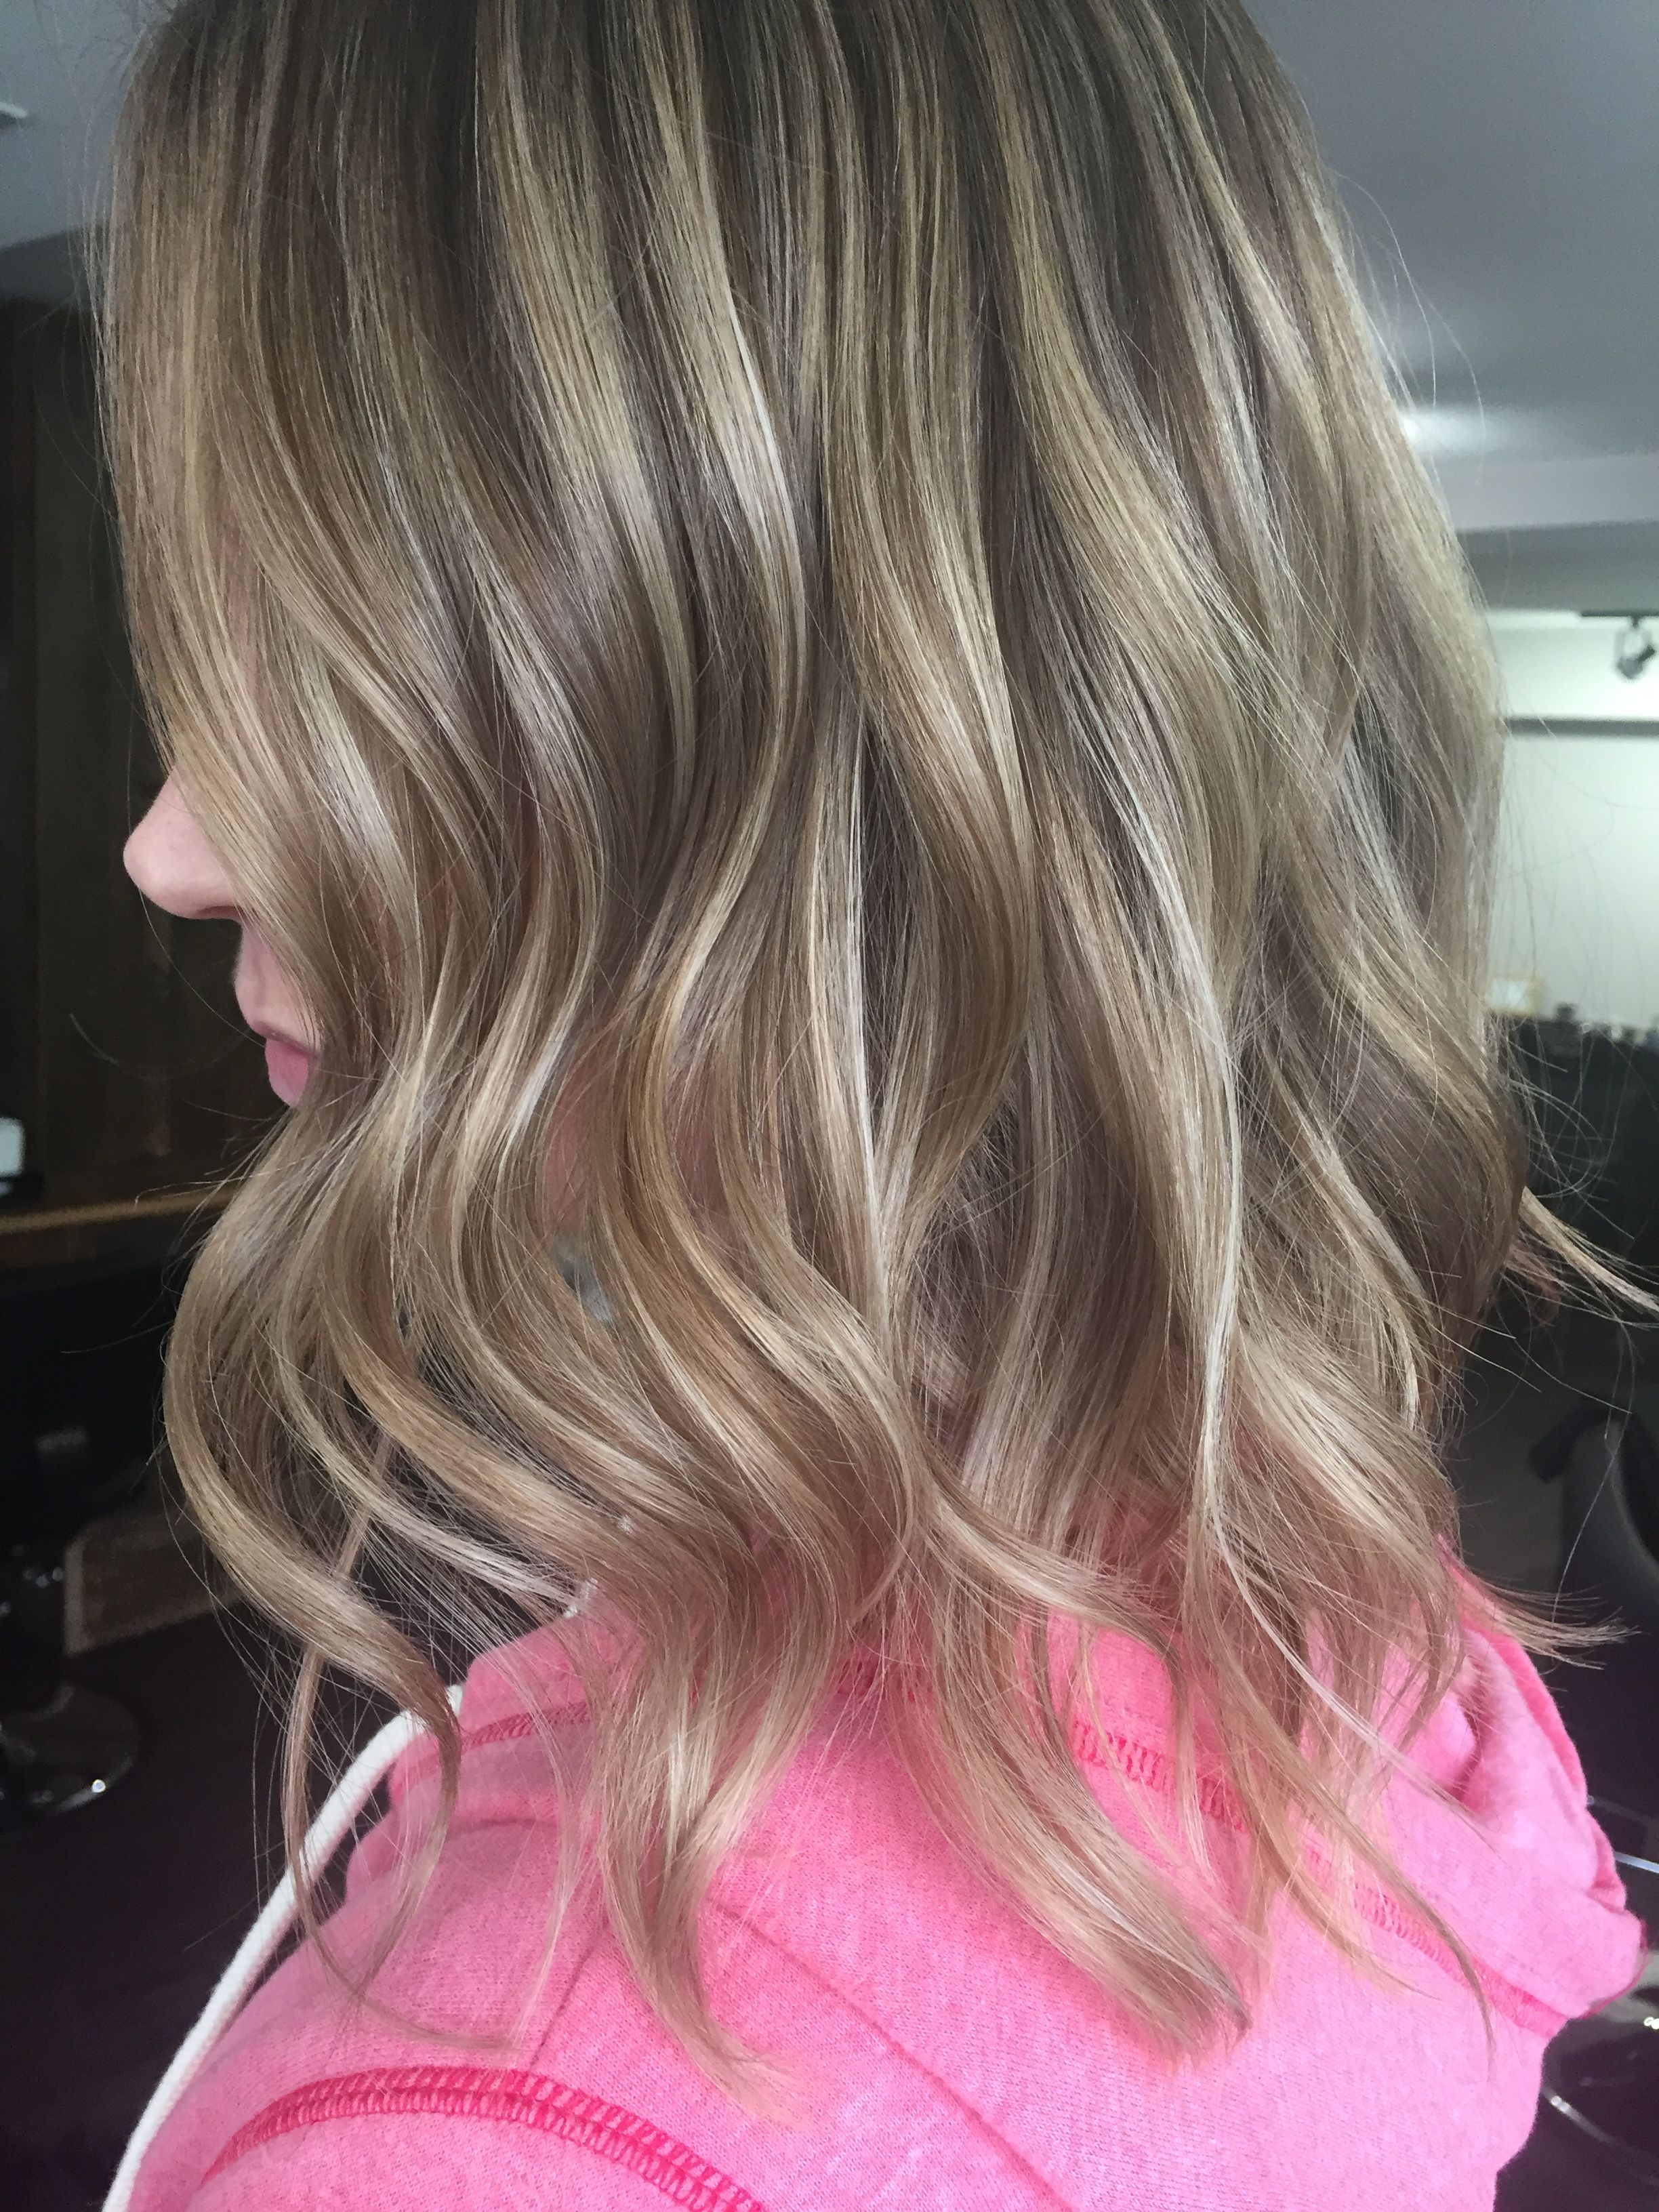 Bronde Sandy Sand Slate Ash Cool Hair Medium Dark Light Blonde Inside Widely Used Long Dark Hairstyles With Blonde Contour Balayage (View 4 of 20)